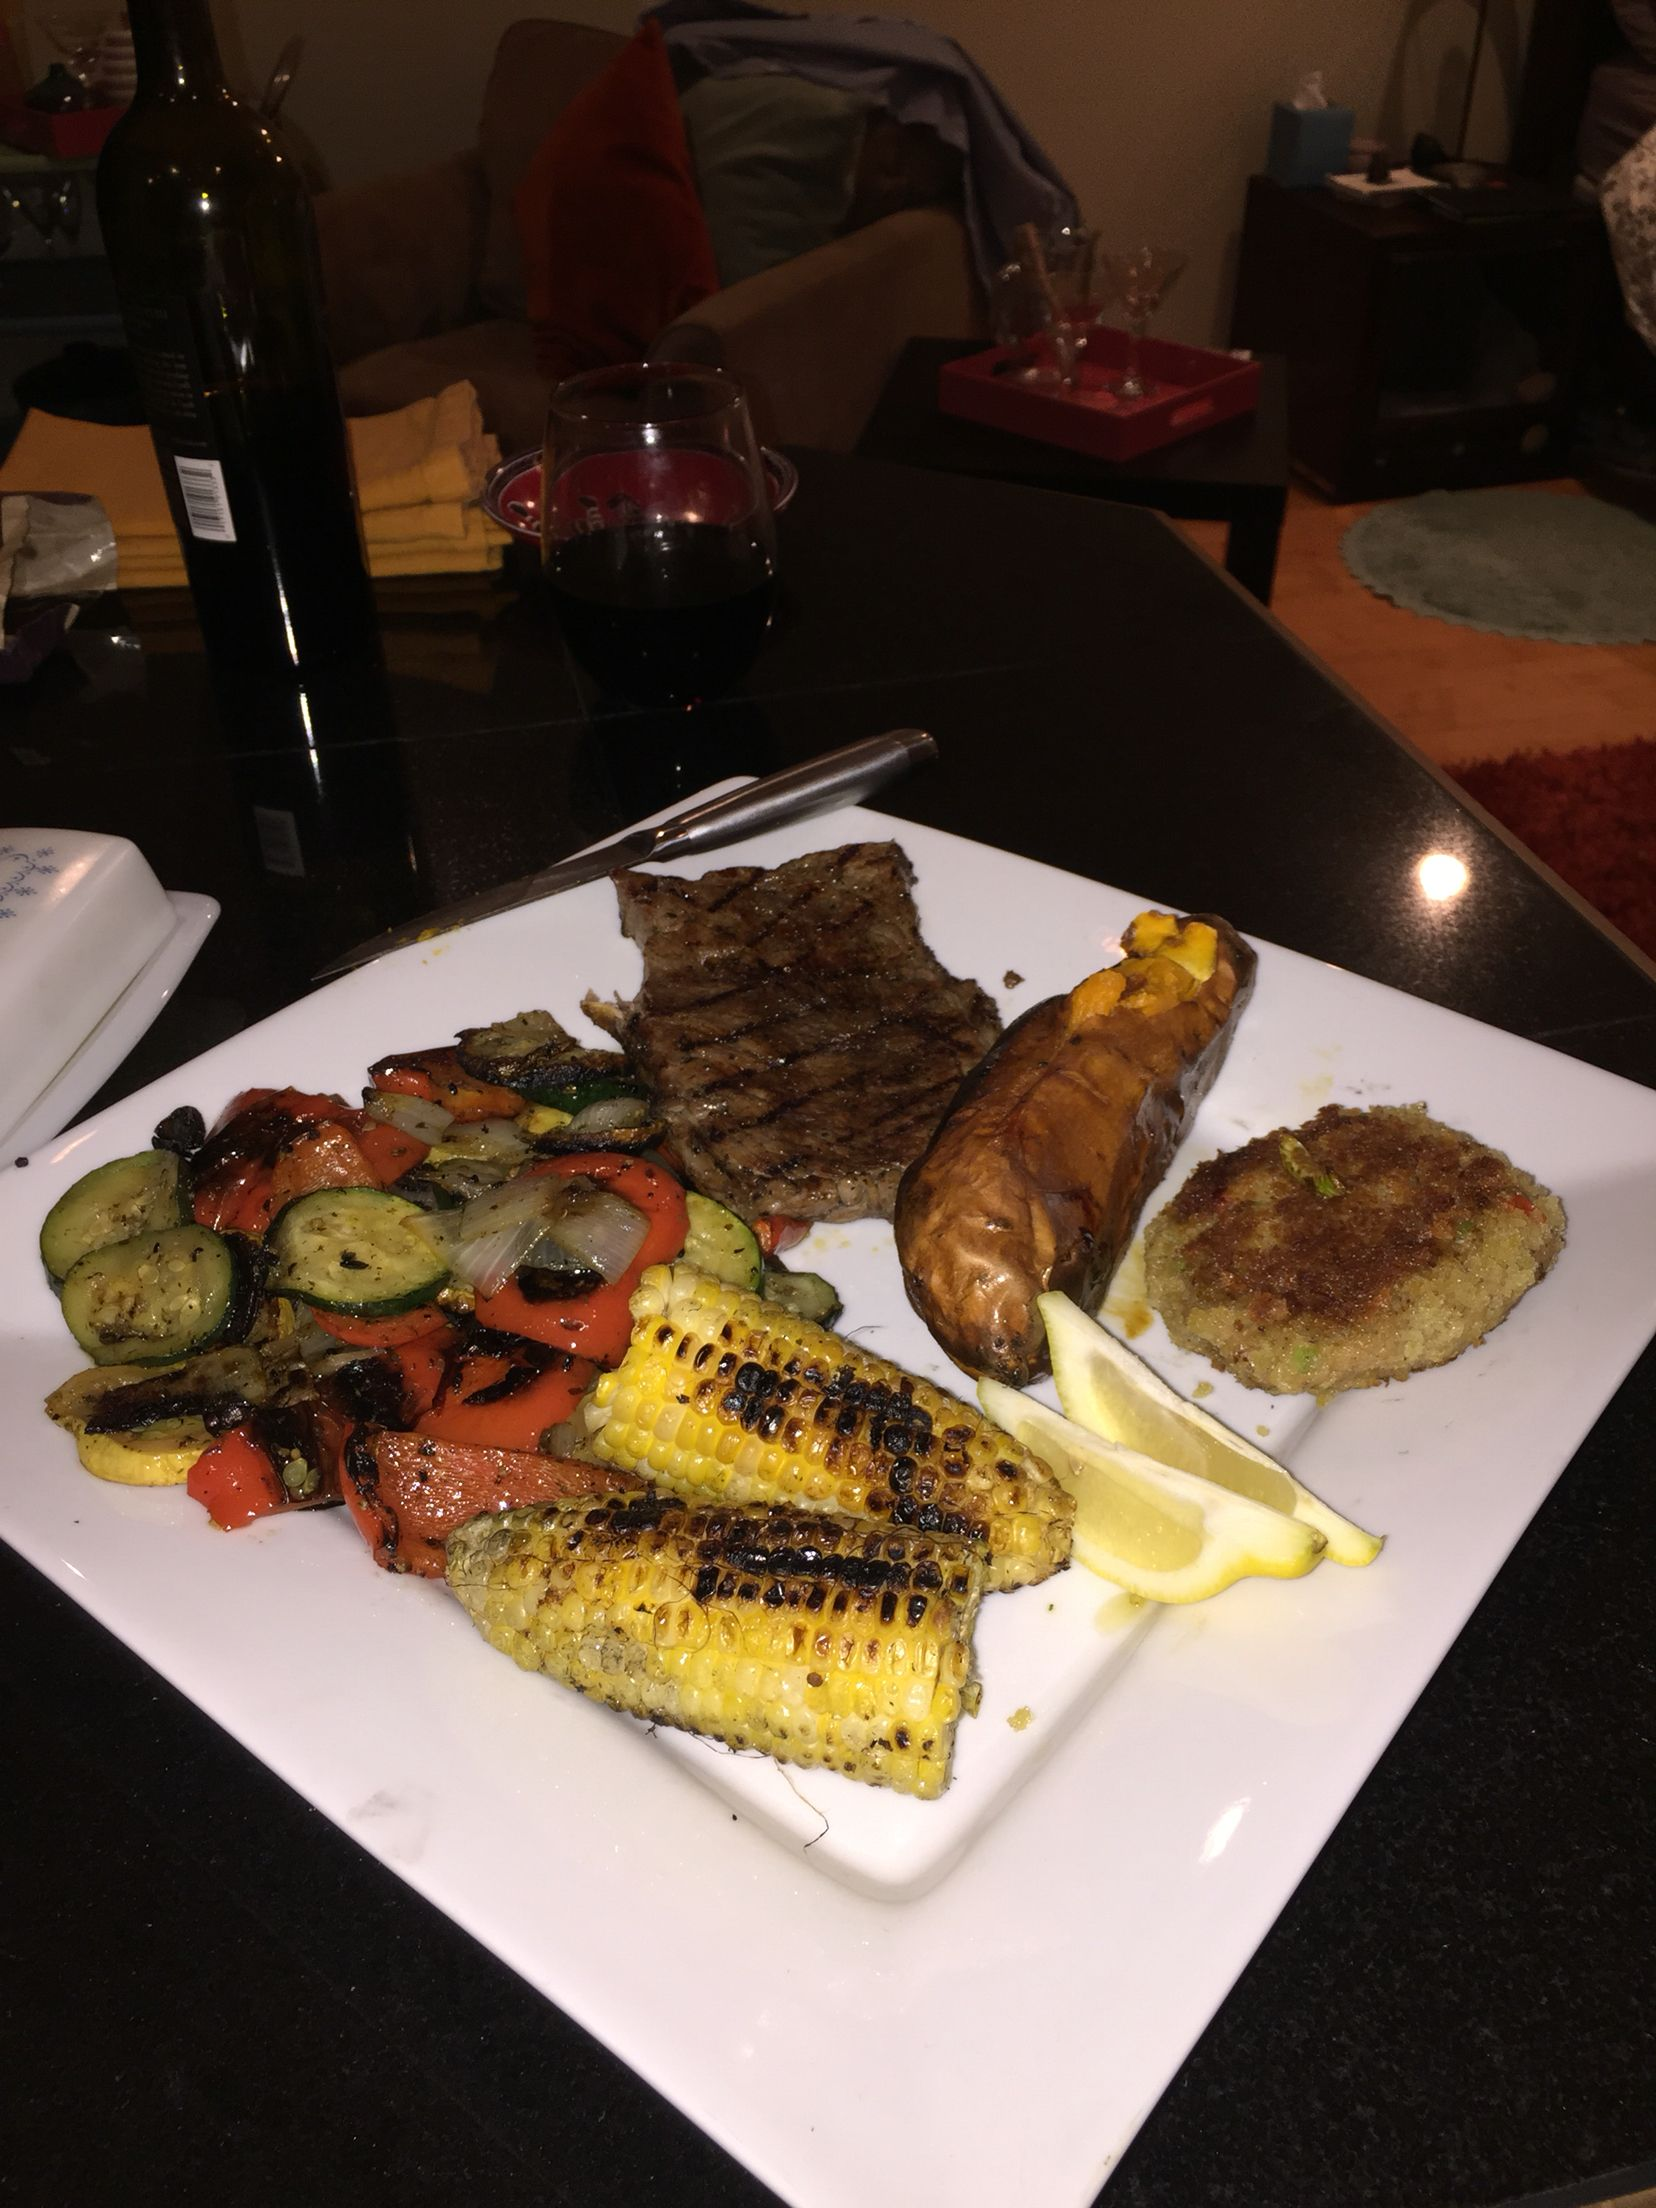 Steak, crab cake and grilled veggies. Very simple. One plate dinner date. Yum!